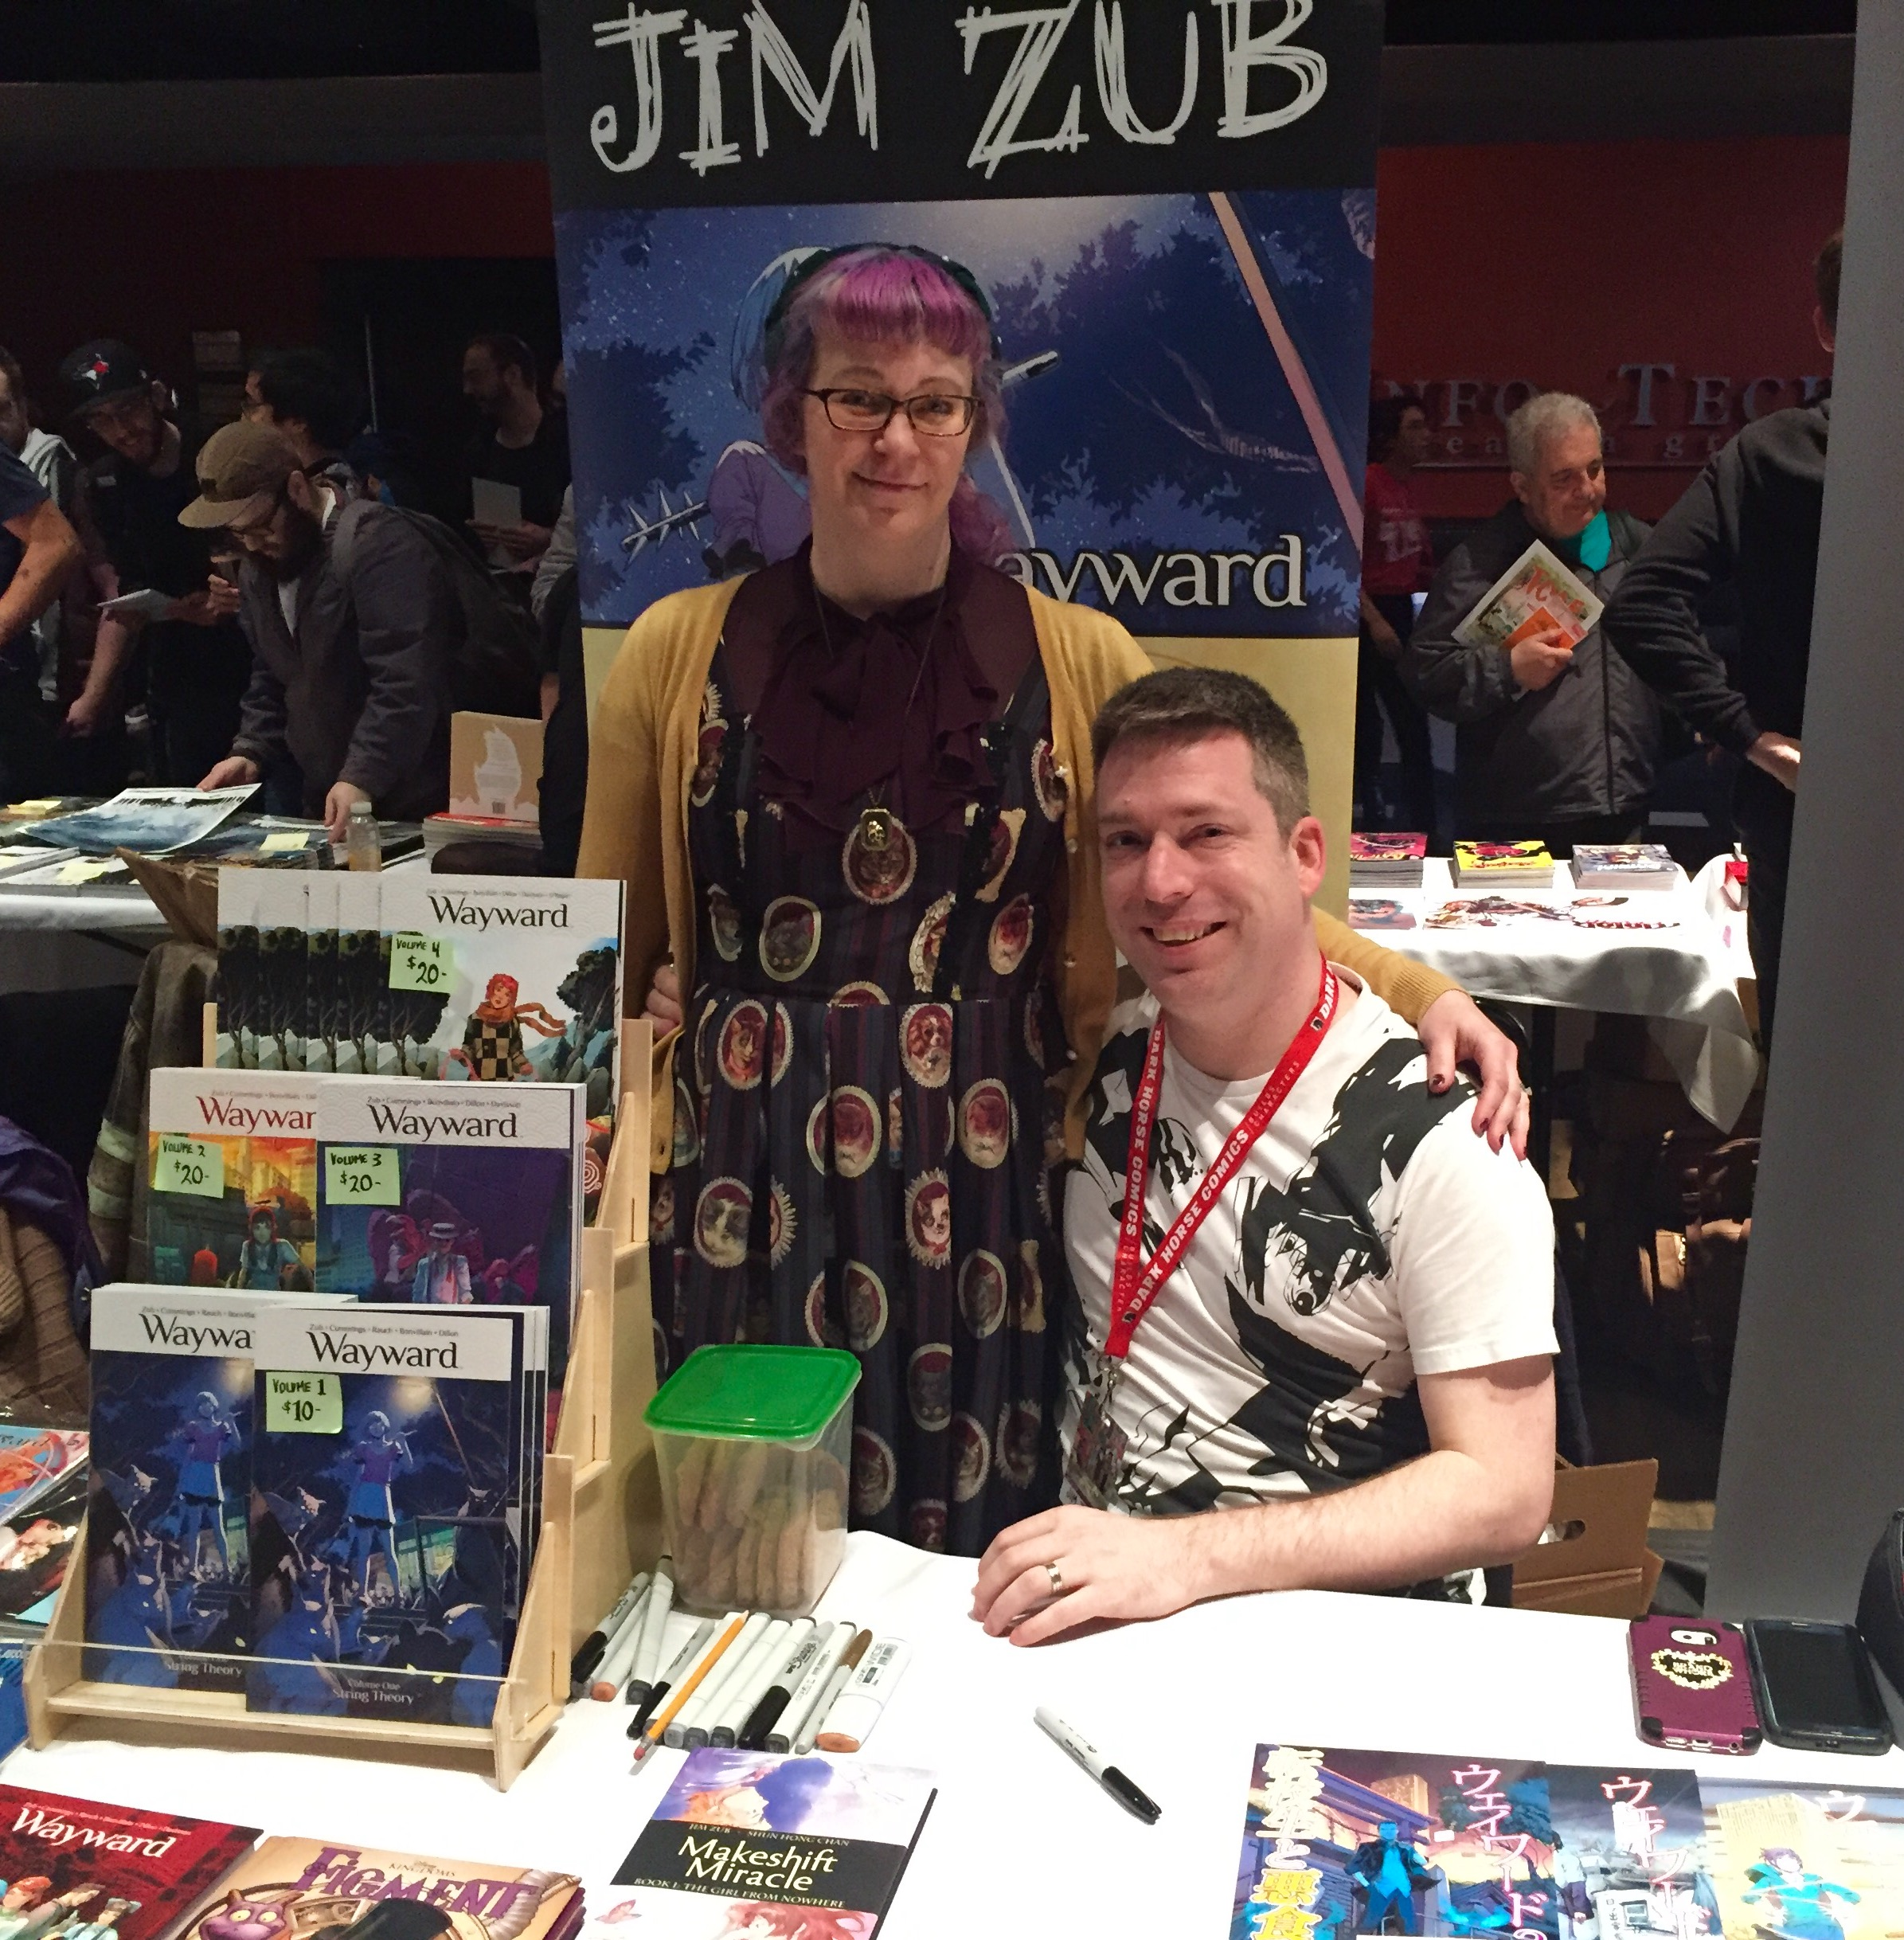 Jim Zub with his wife, Stacy King, at TCAF 2017.  ( Photo credit: Chris Doucher/GeekNerdNet.com )